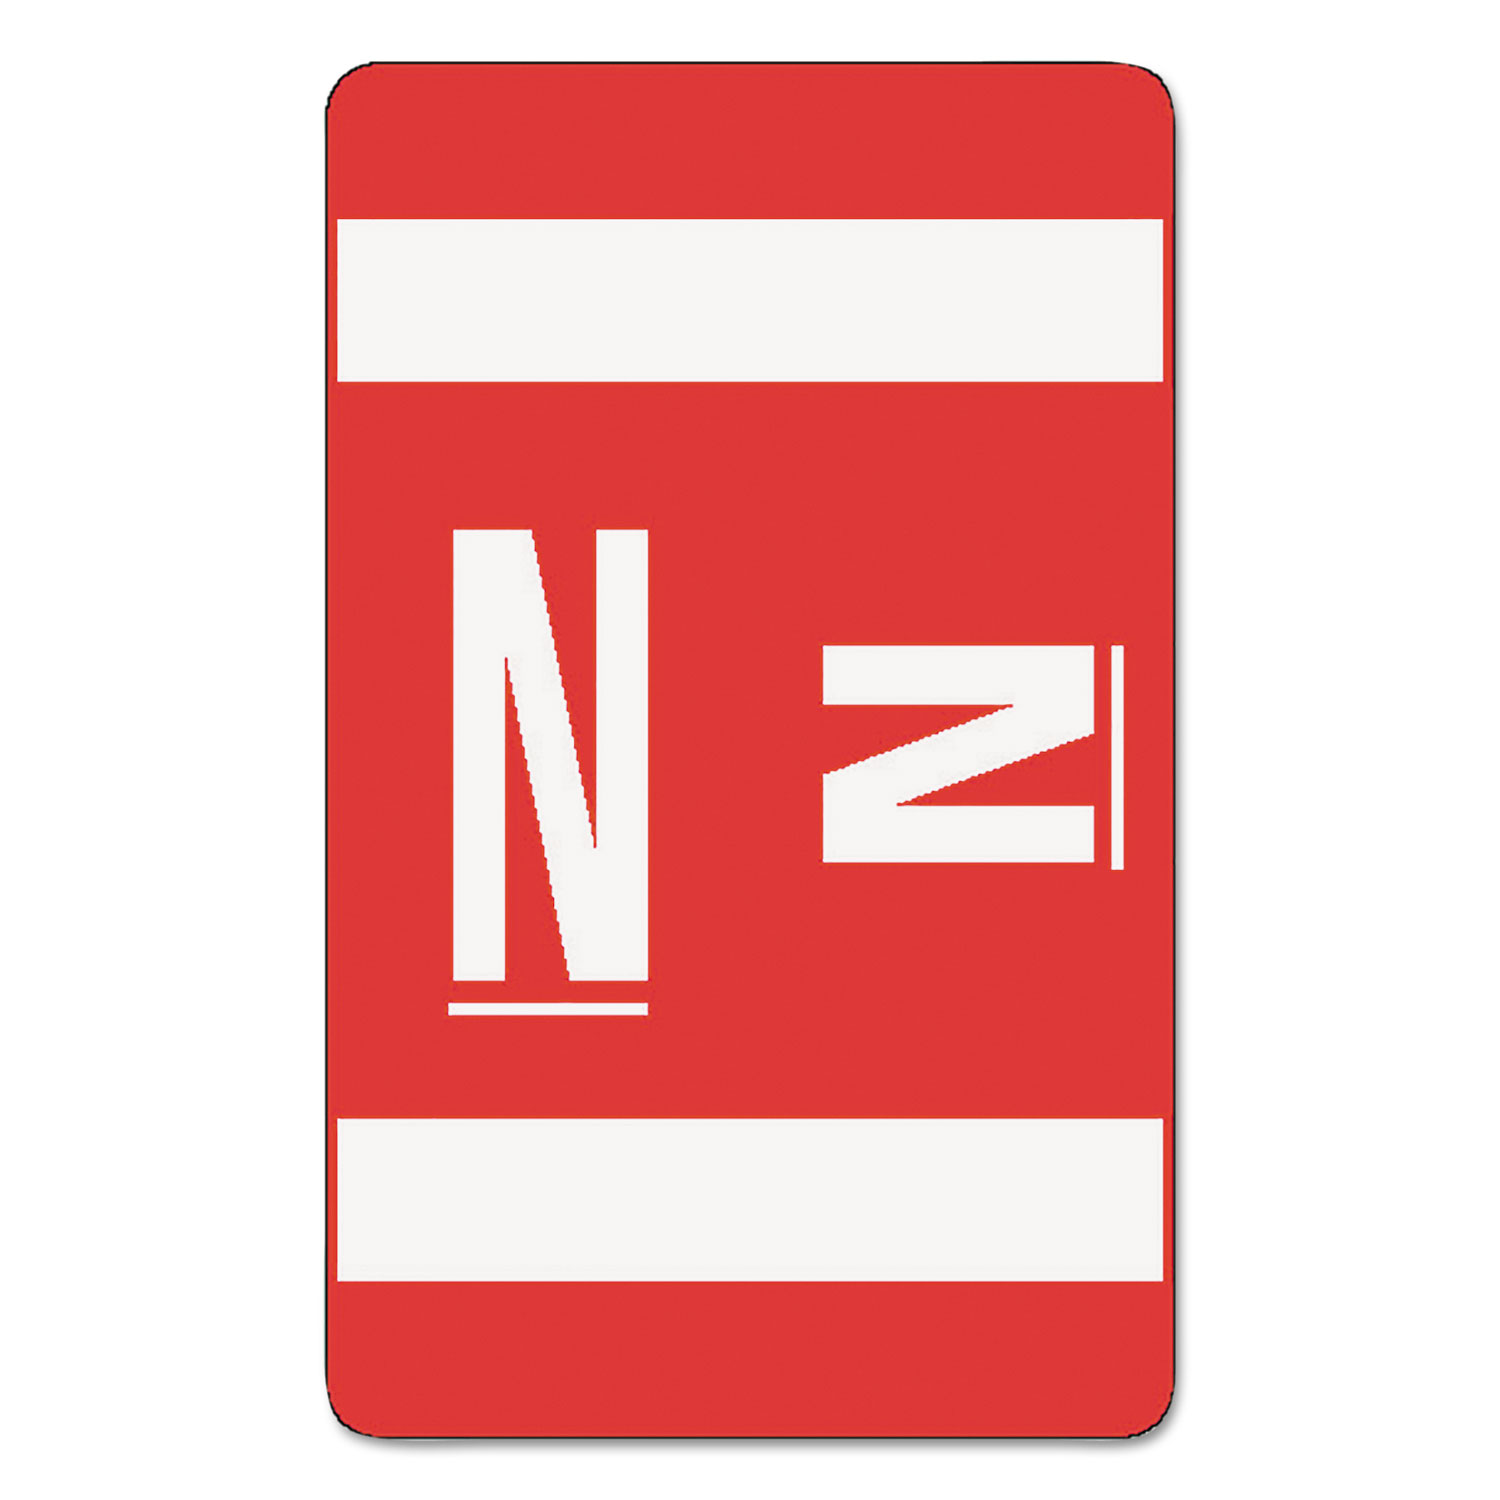 AlphaZ Color-Coded Second Letter Alphabetical Labels, N, 1 x 1.63, Red, 10/Sheet, 10 Sheets/Pack